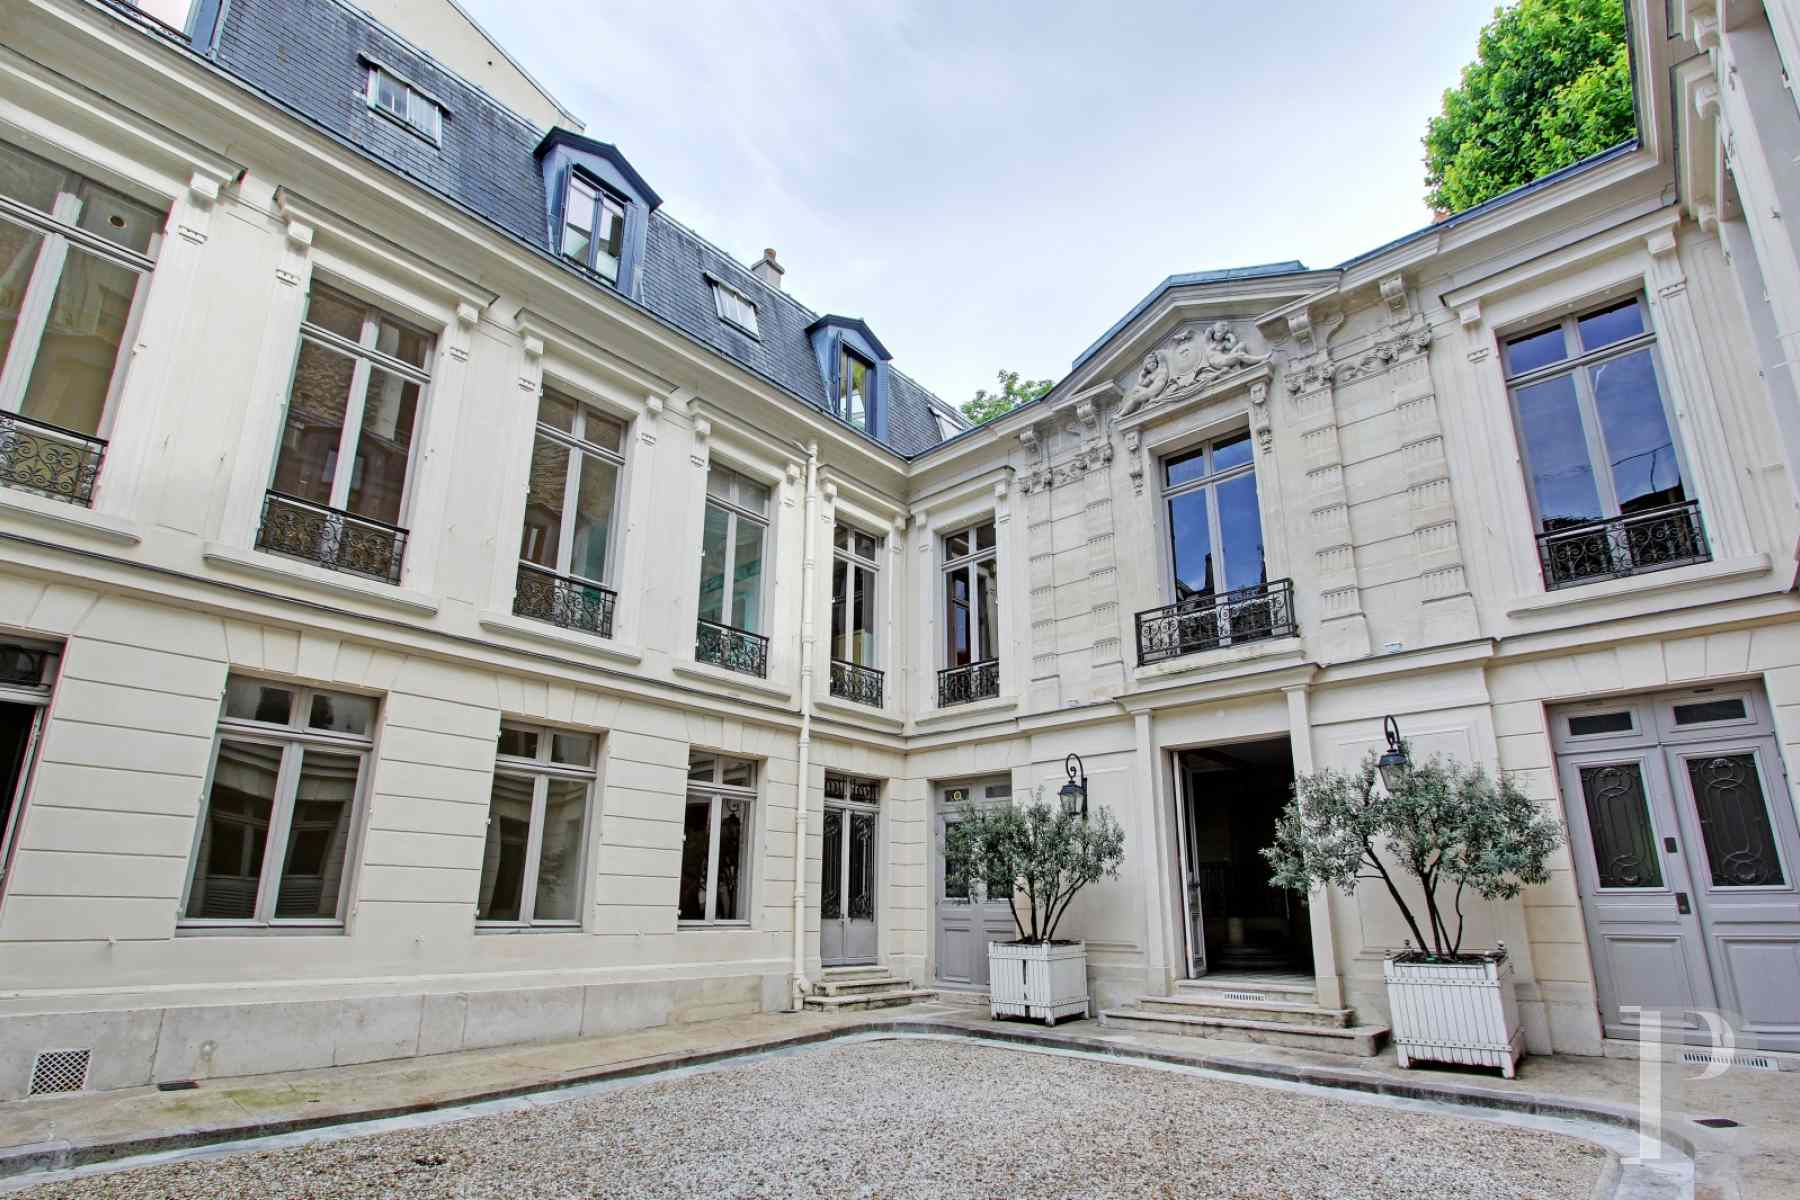 mansion houses for sale paris courtyard garden - 4 zoom